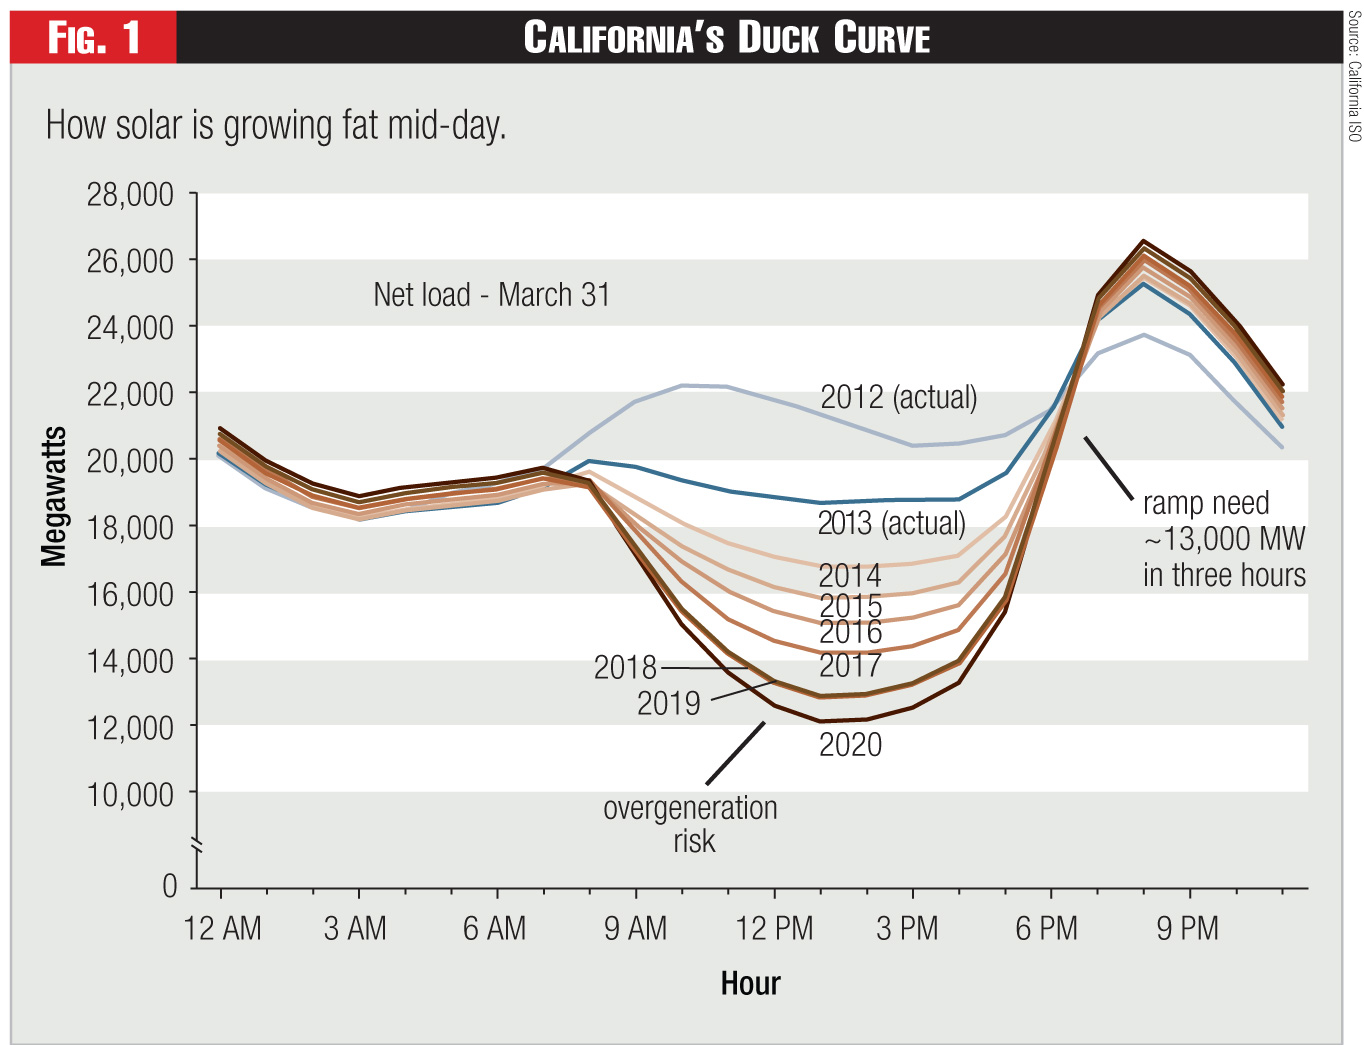 Figure 1 - California's Duck Curve